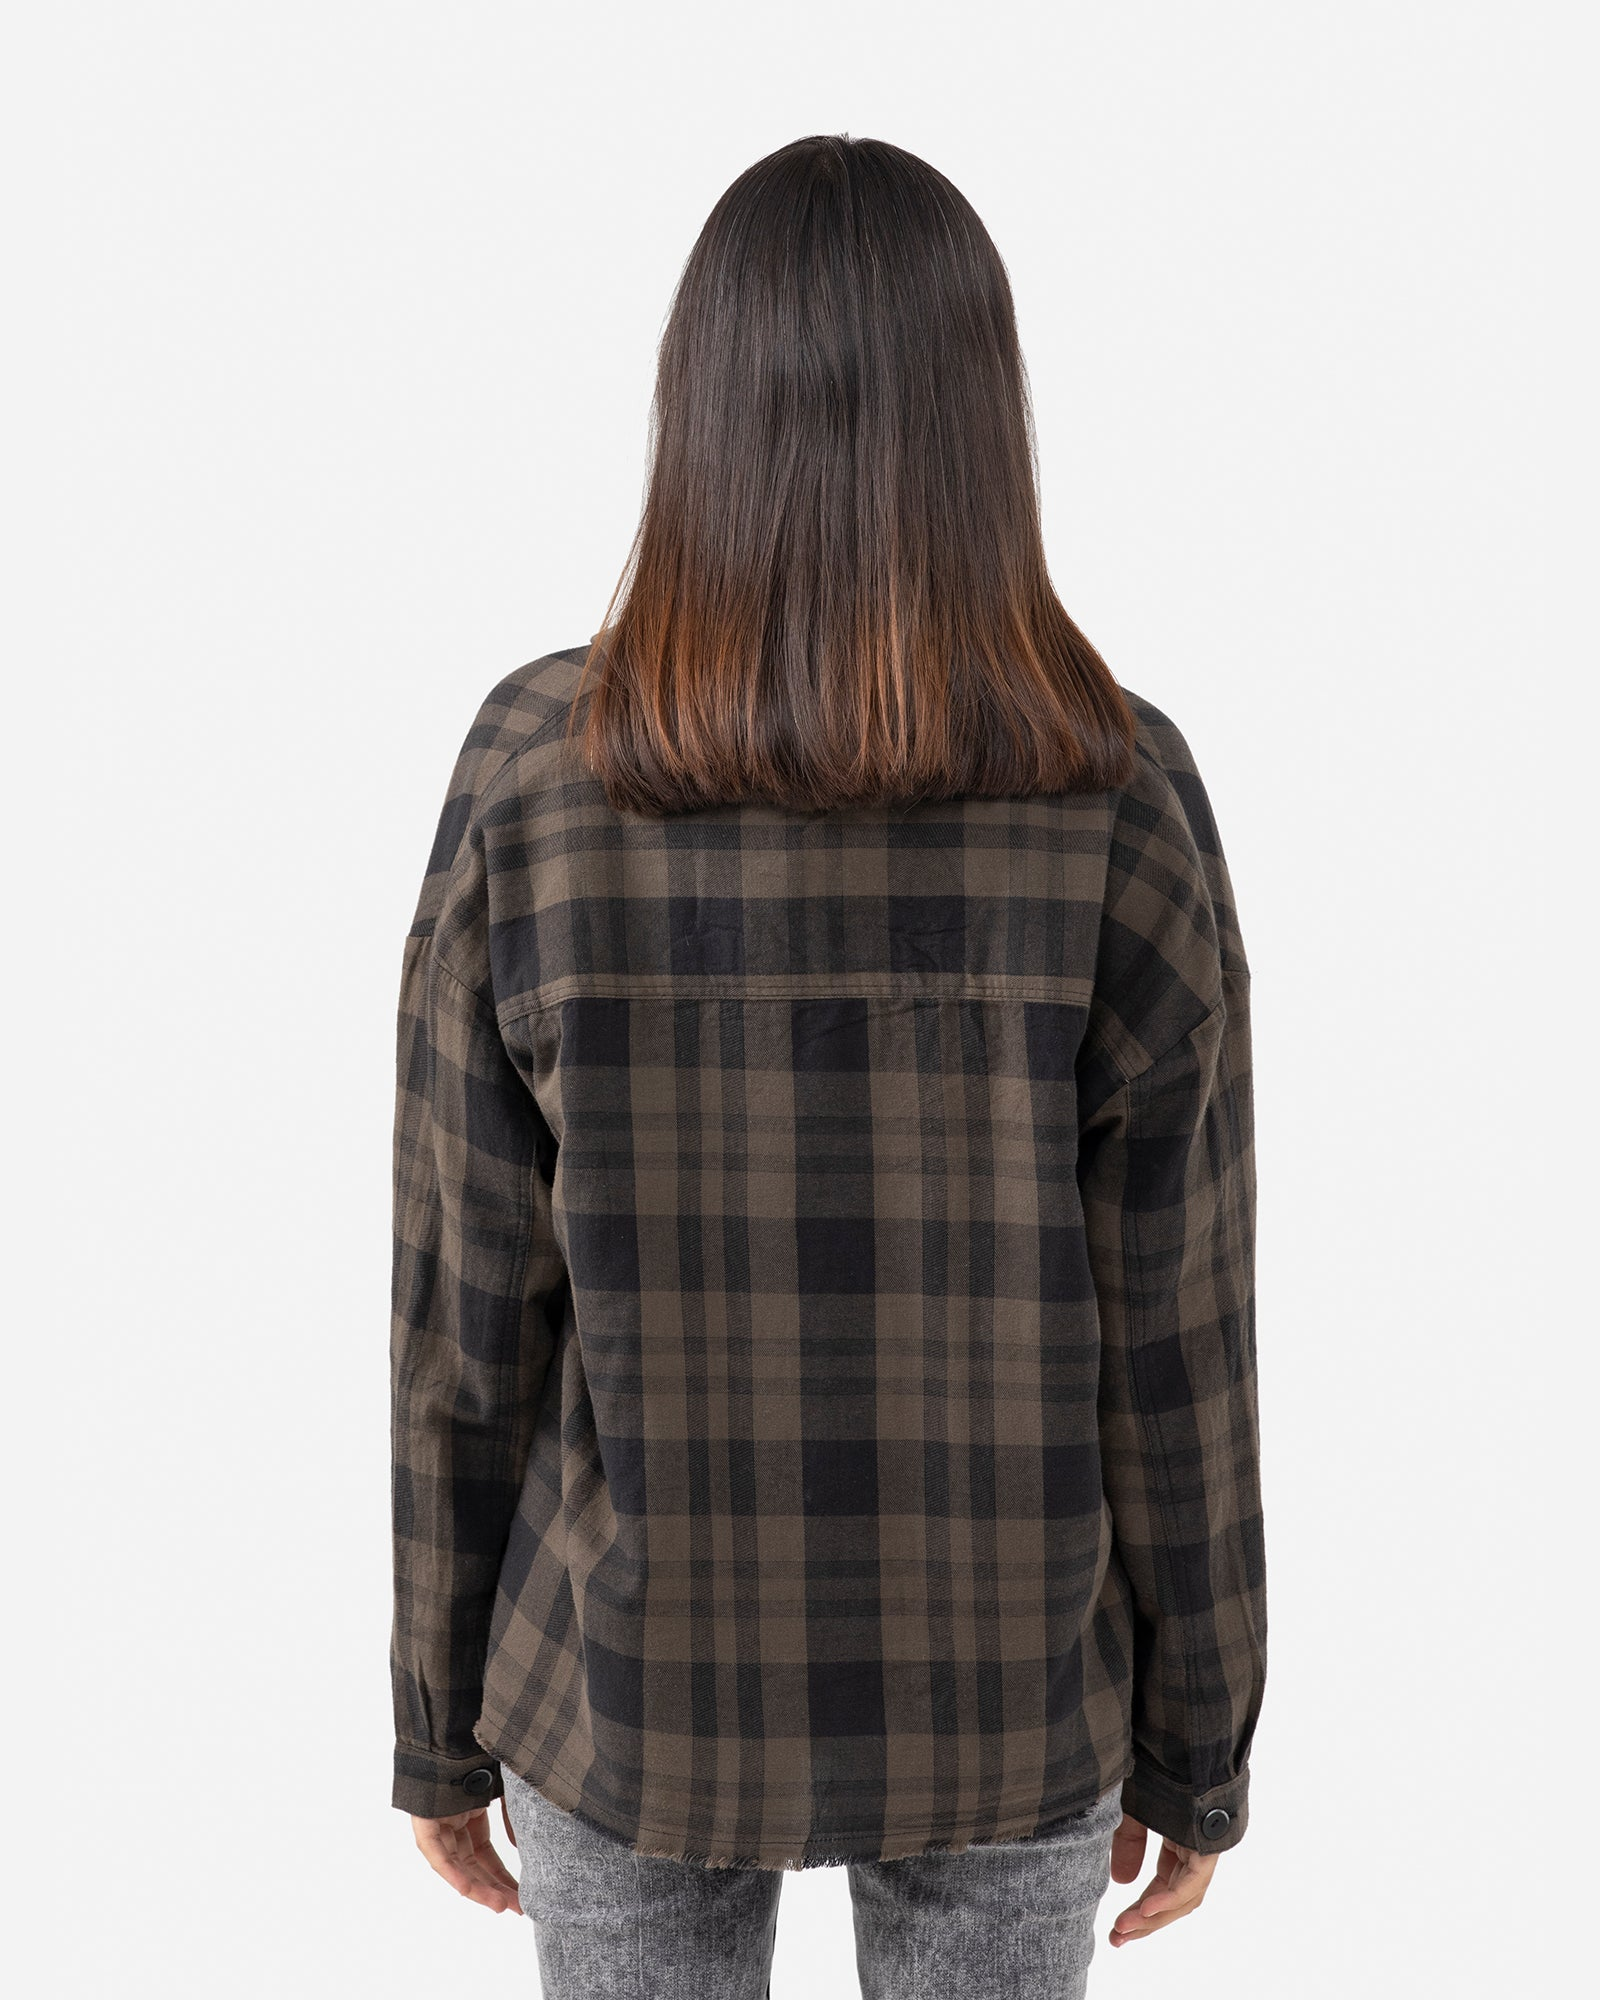 Checkered Shirt with Patch Pockets